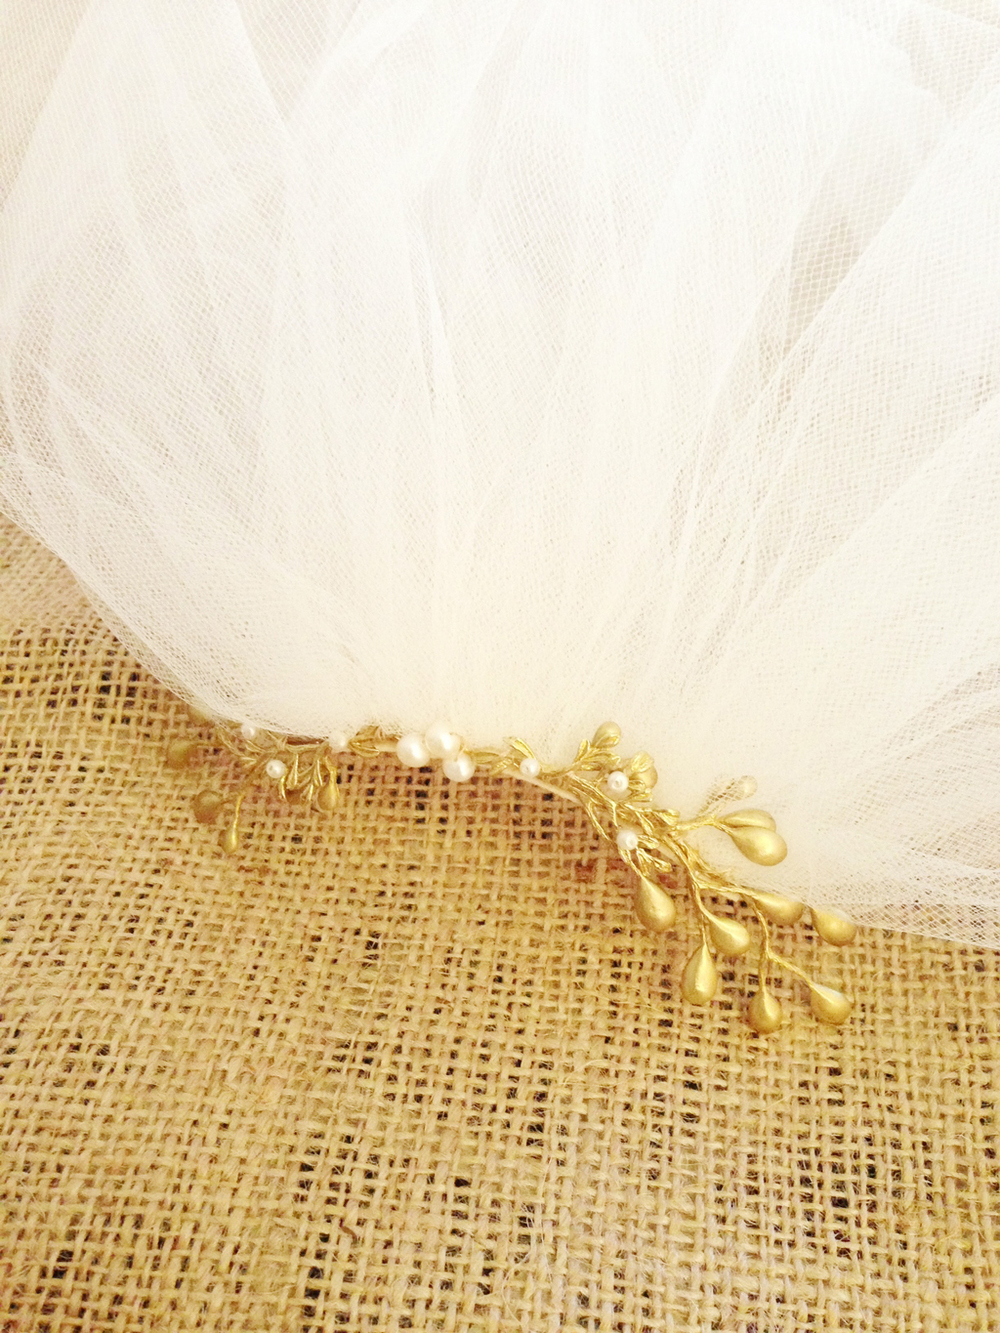 gold tulle veil branch wedding hushed commotion 2.jpg